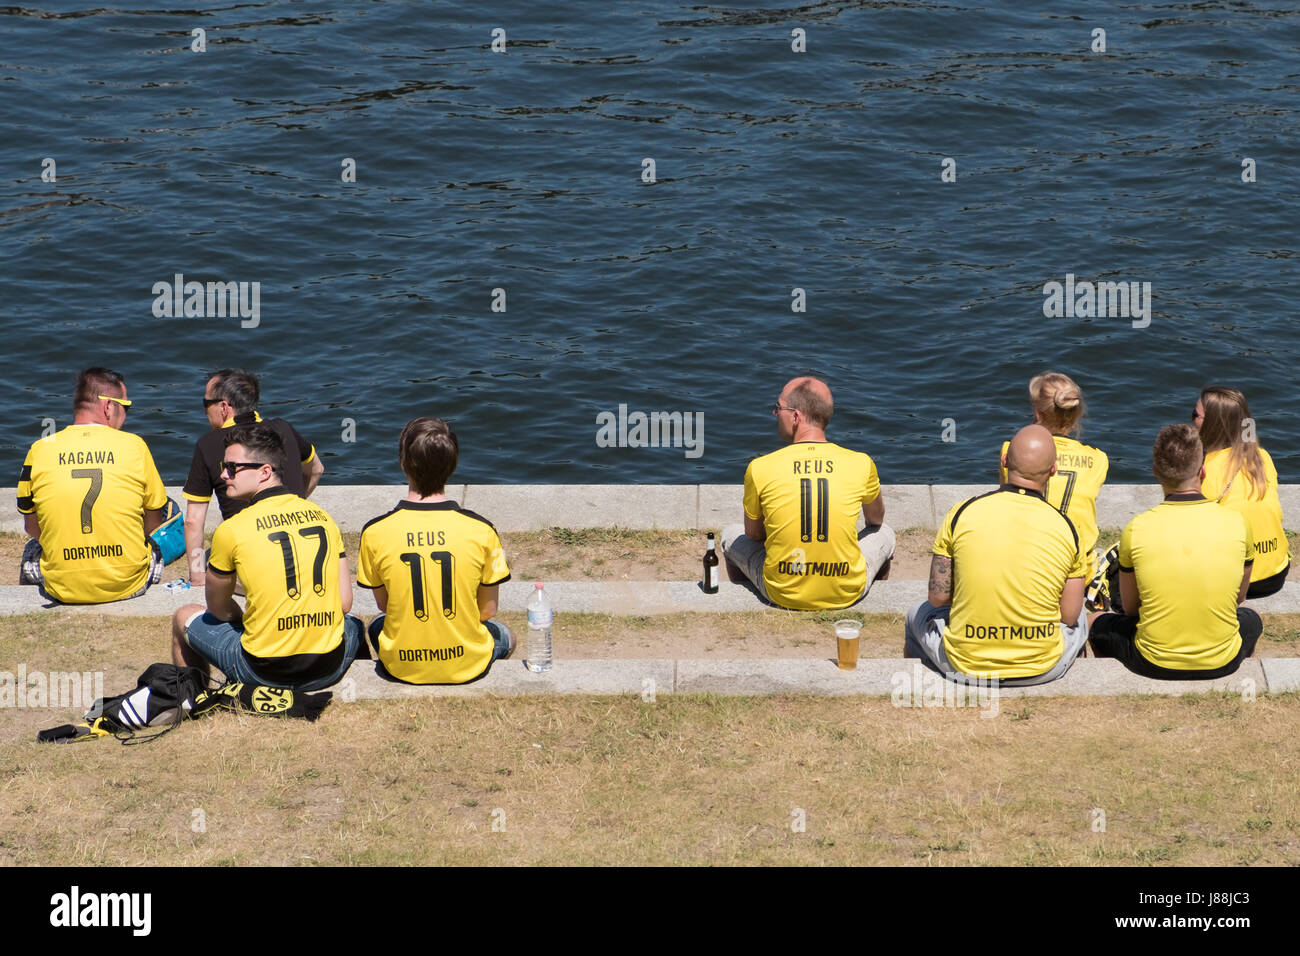 Berlin, Germany - may 27, 2017: BVB Fans / Borussia Dortmund Fans wearing tricots and sitting on river Spree in - Stock Image